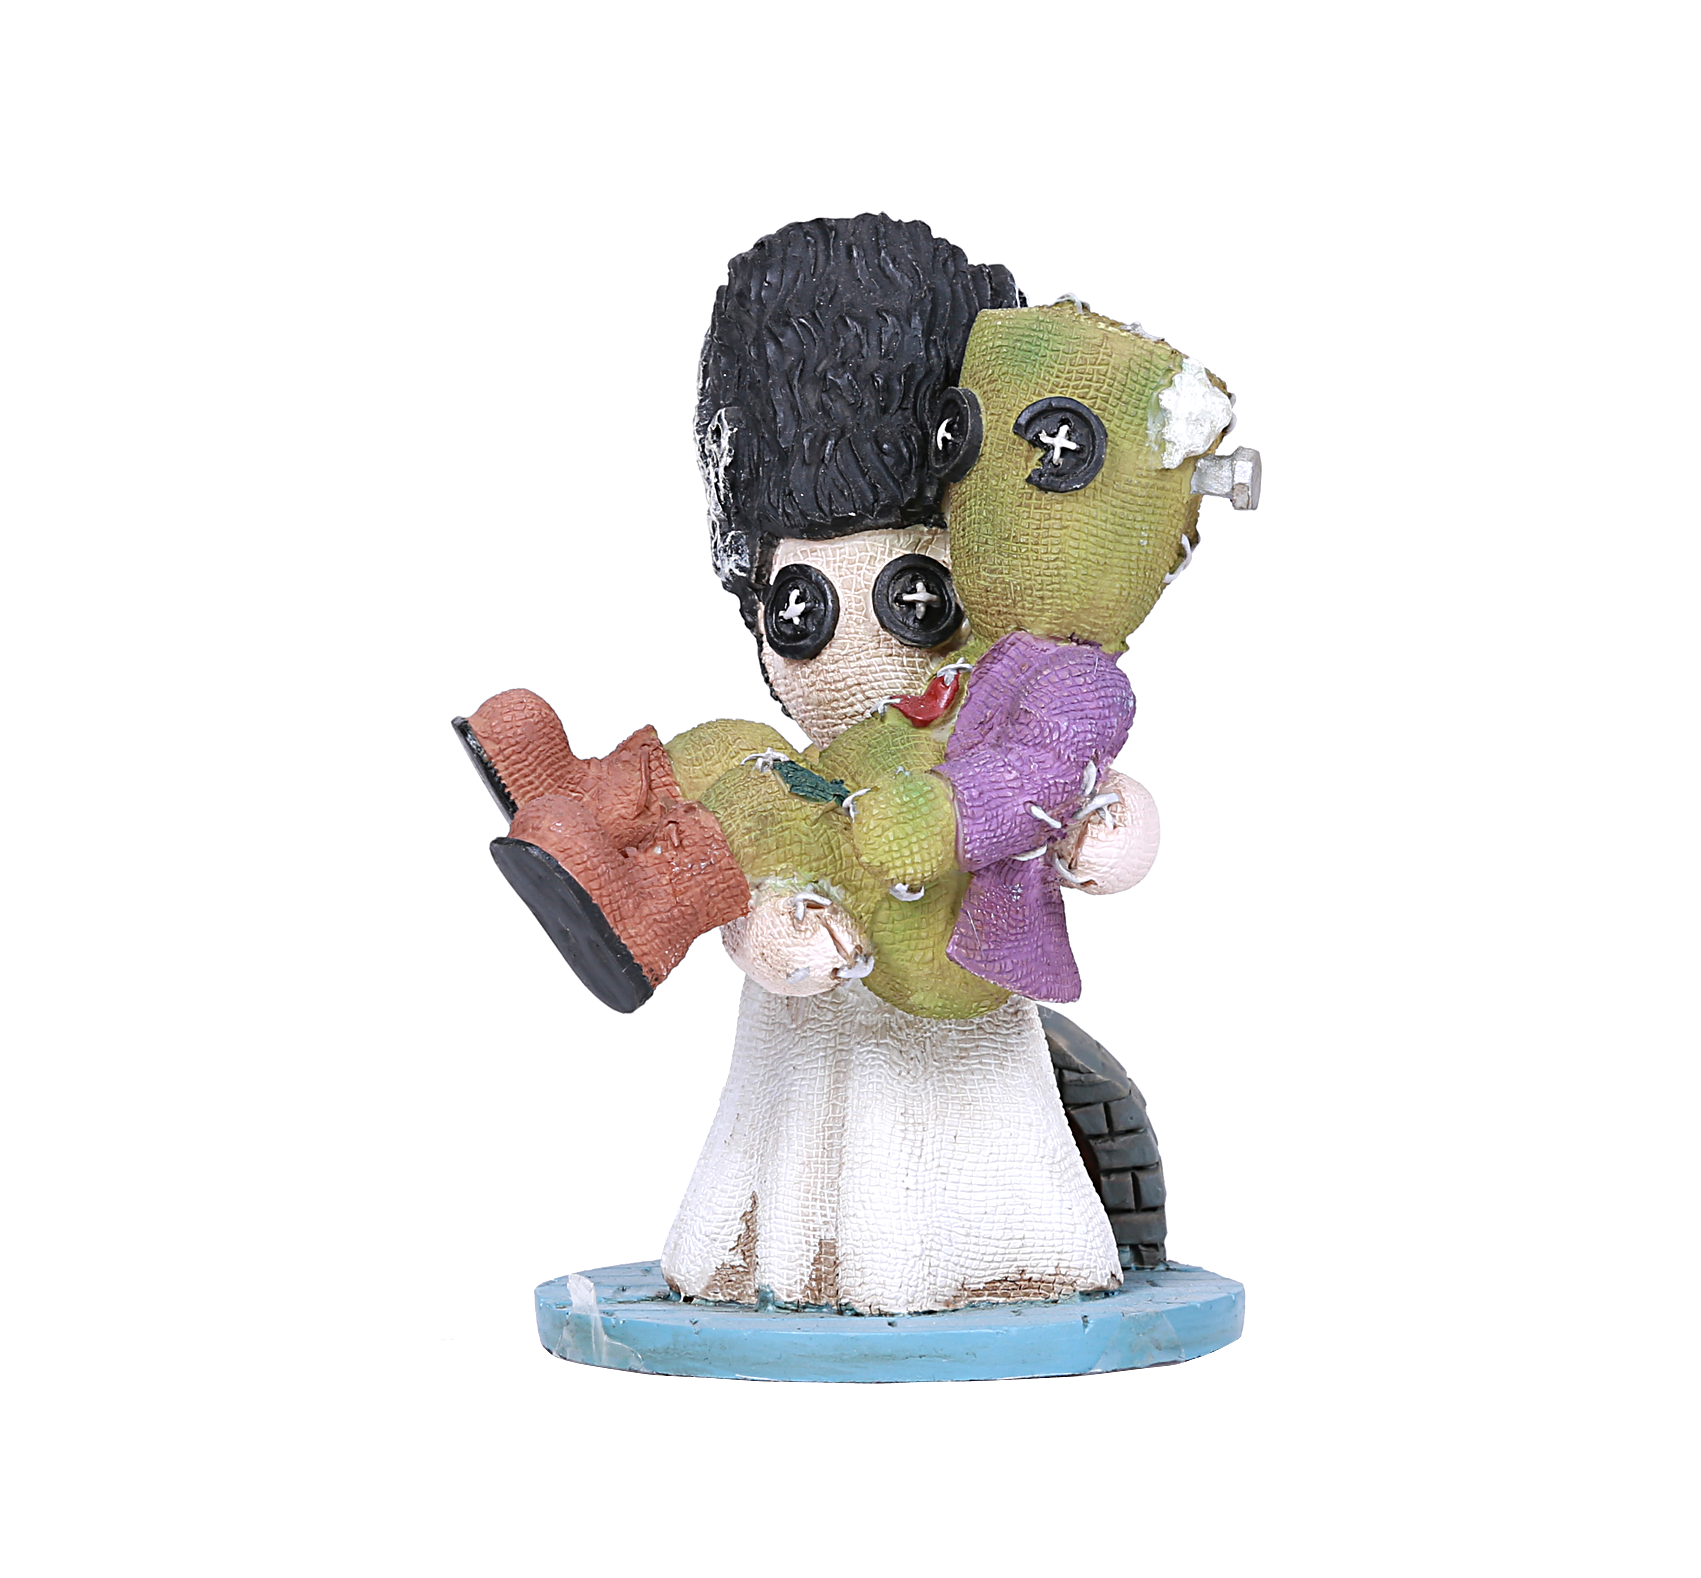 Pinhead Monsters Couple Frankenstein Bride Monster Doll Figurine Statue Wedding Zombie